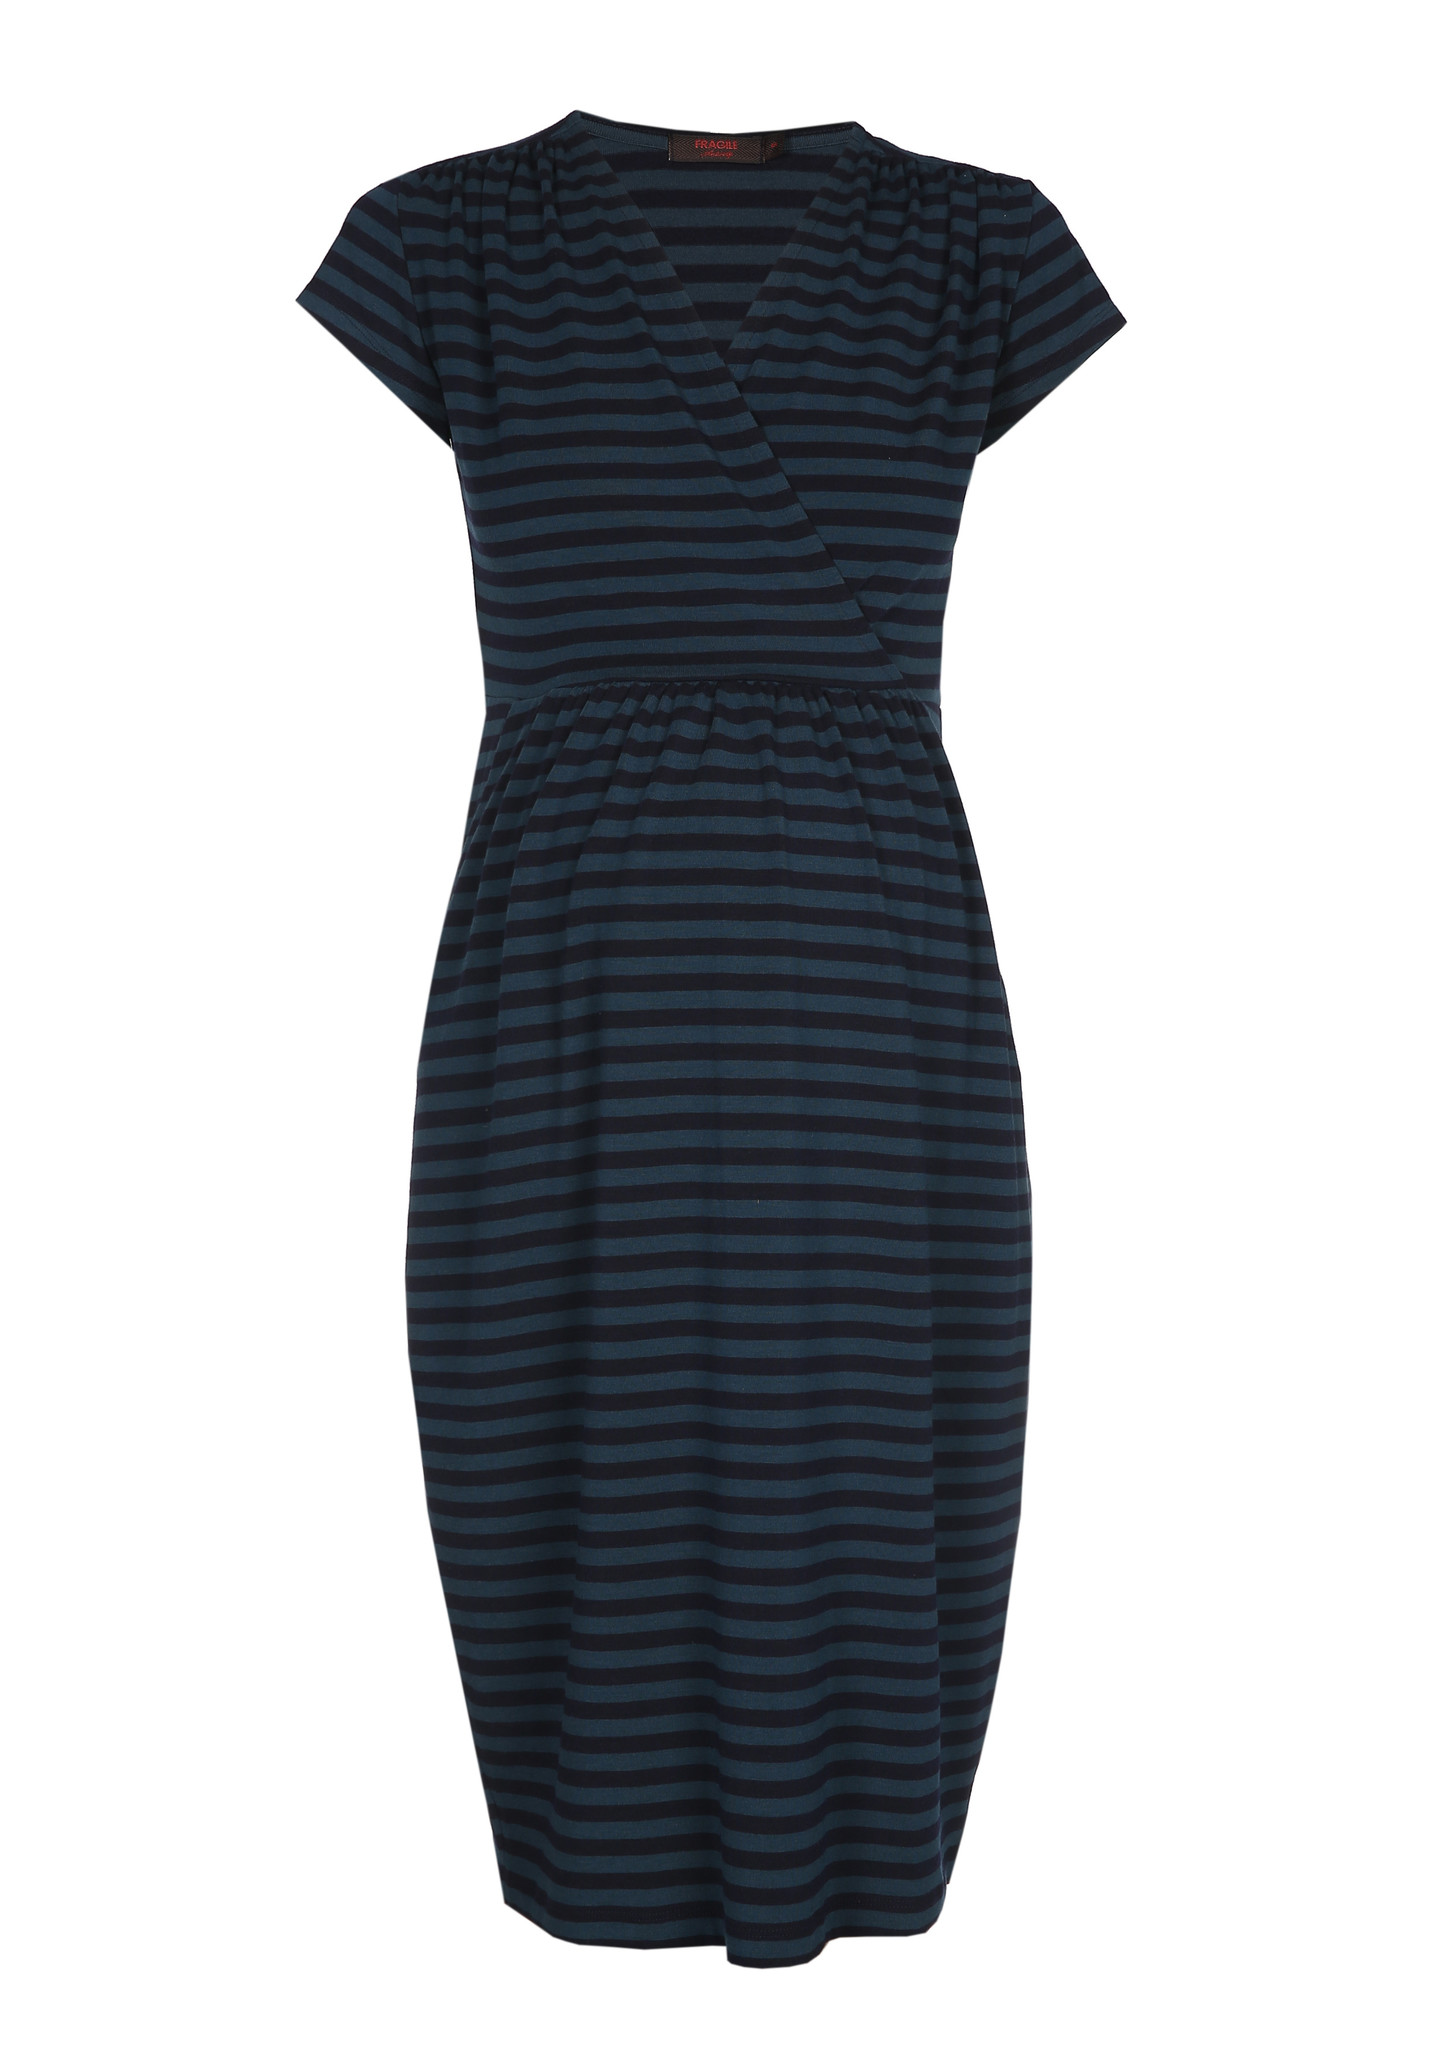 Comfy dress - petrol/navy-1